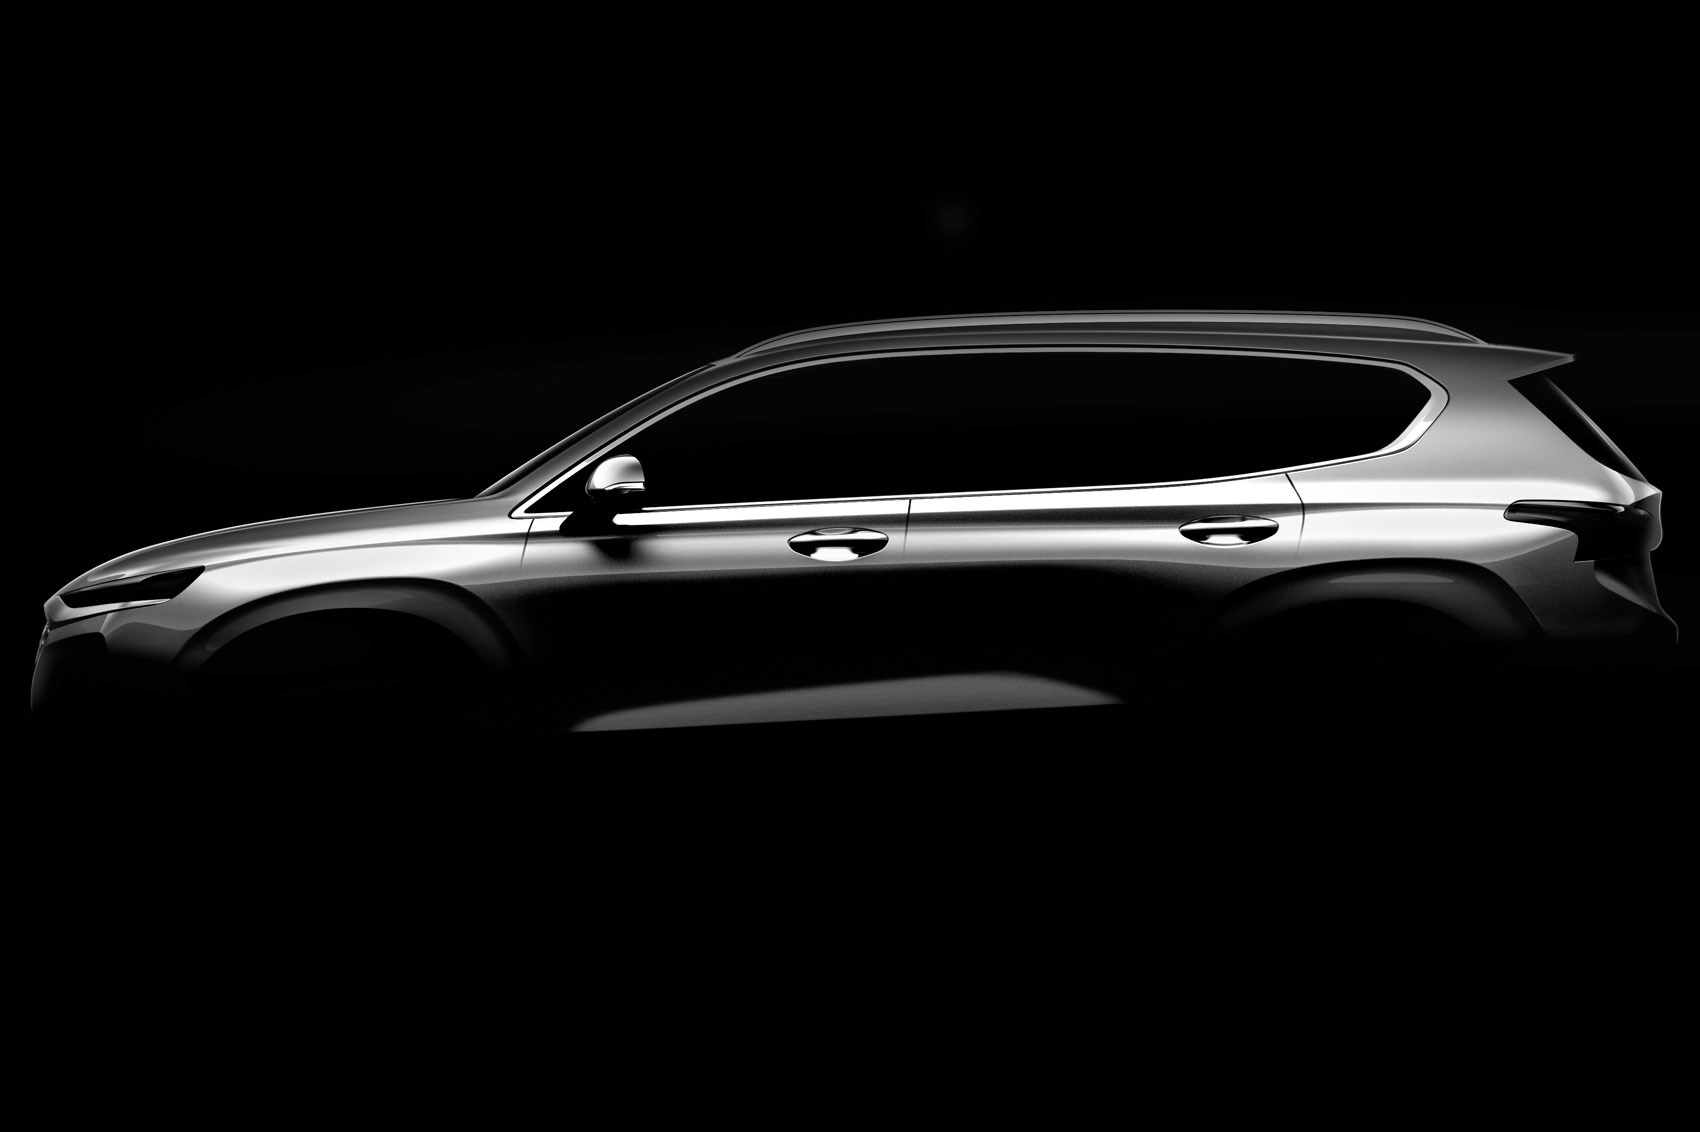 New Hyundai Santa Fe 2018 teased as launch date gets confirmed